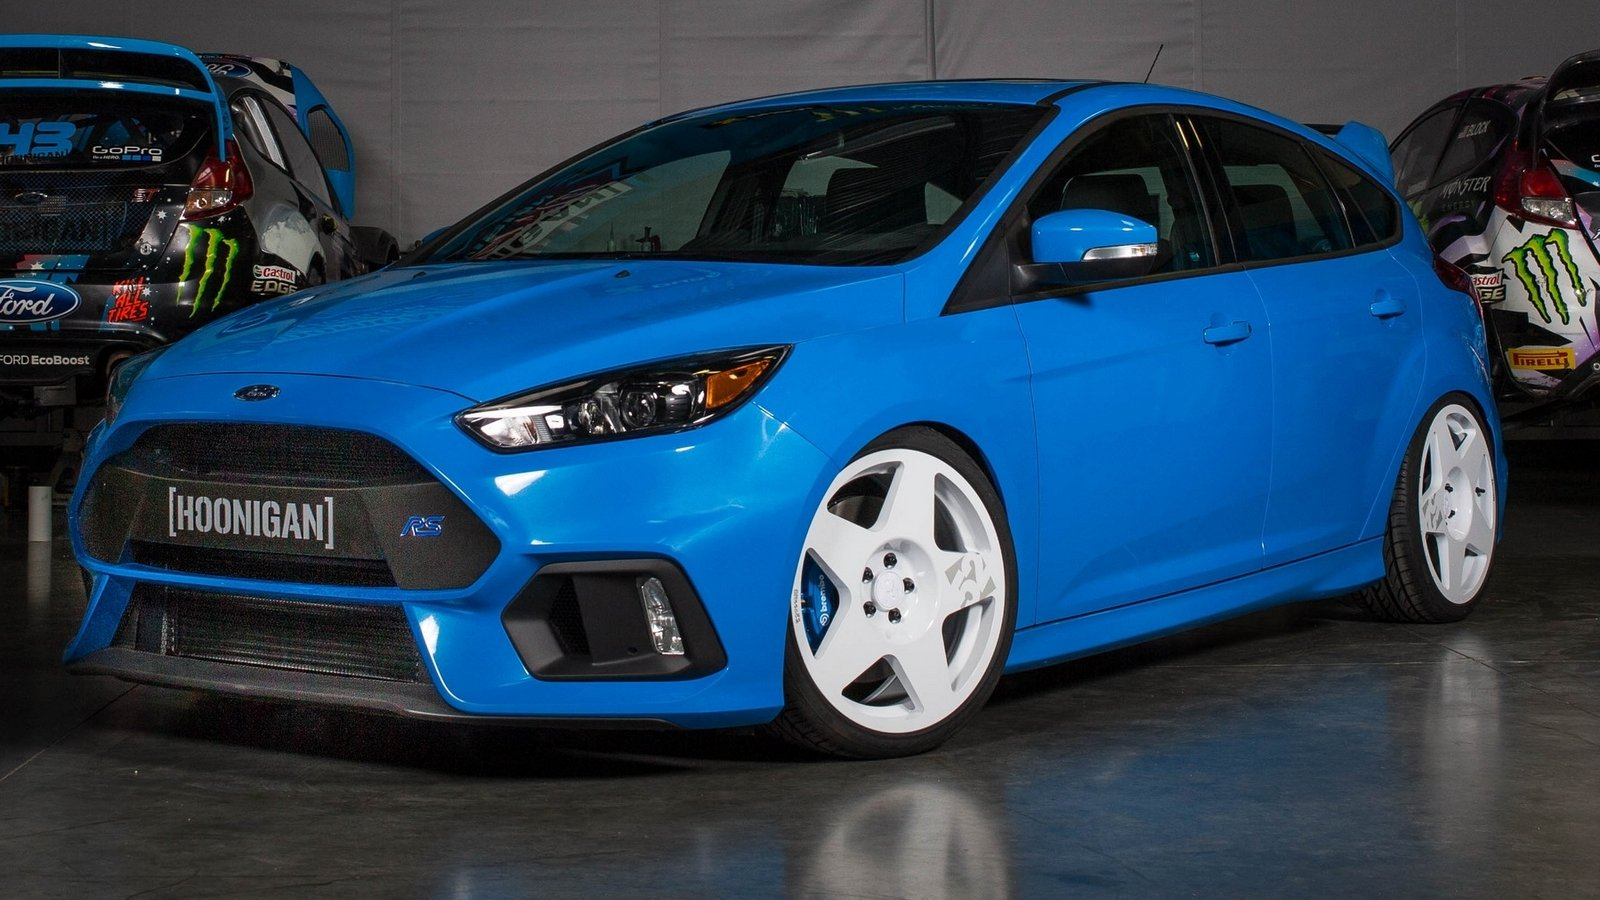 2016 ford focus rs jdrf raffle picture 654334 car review top speed. Black Bedroom Furniture Sets. Home Design Ideas